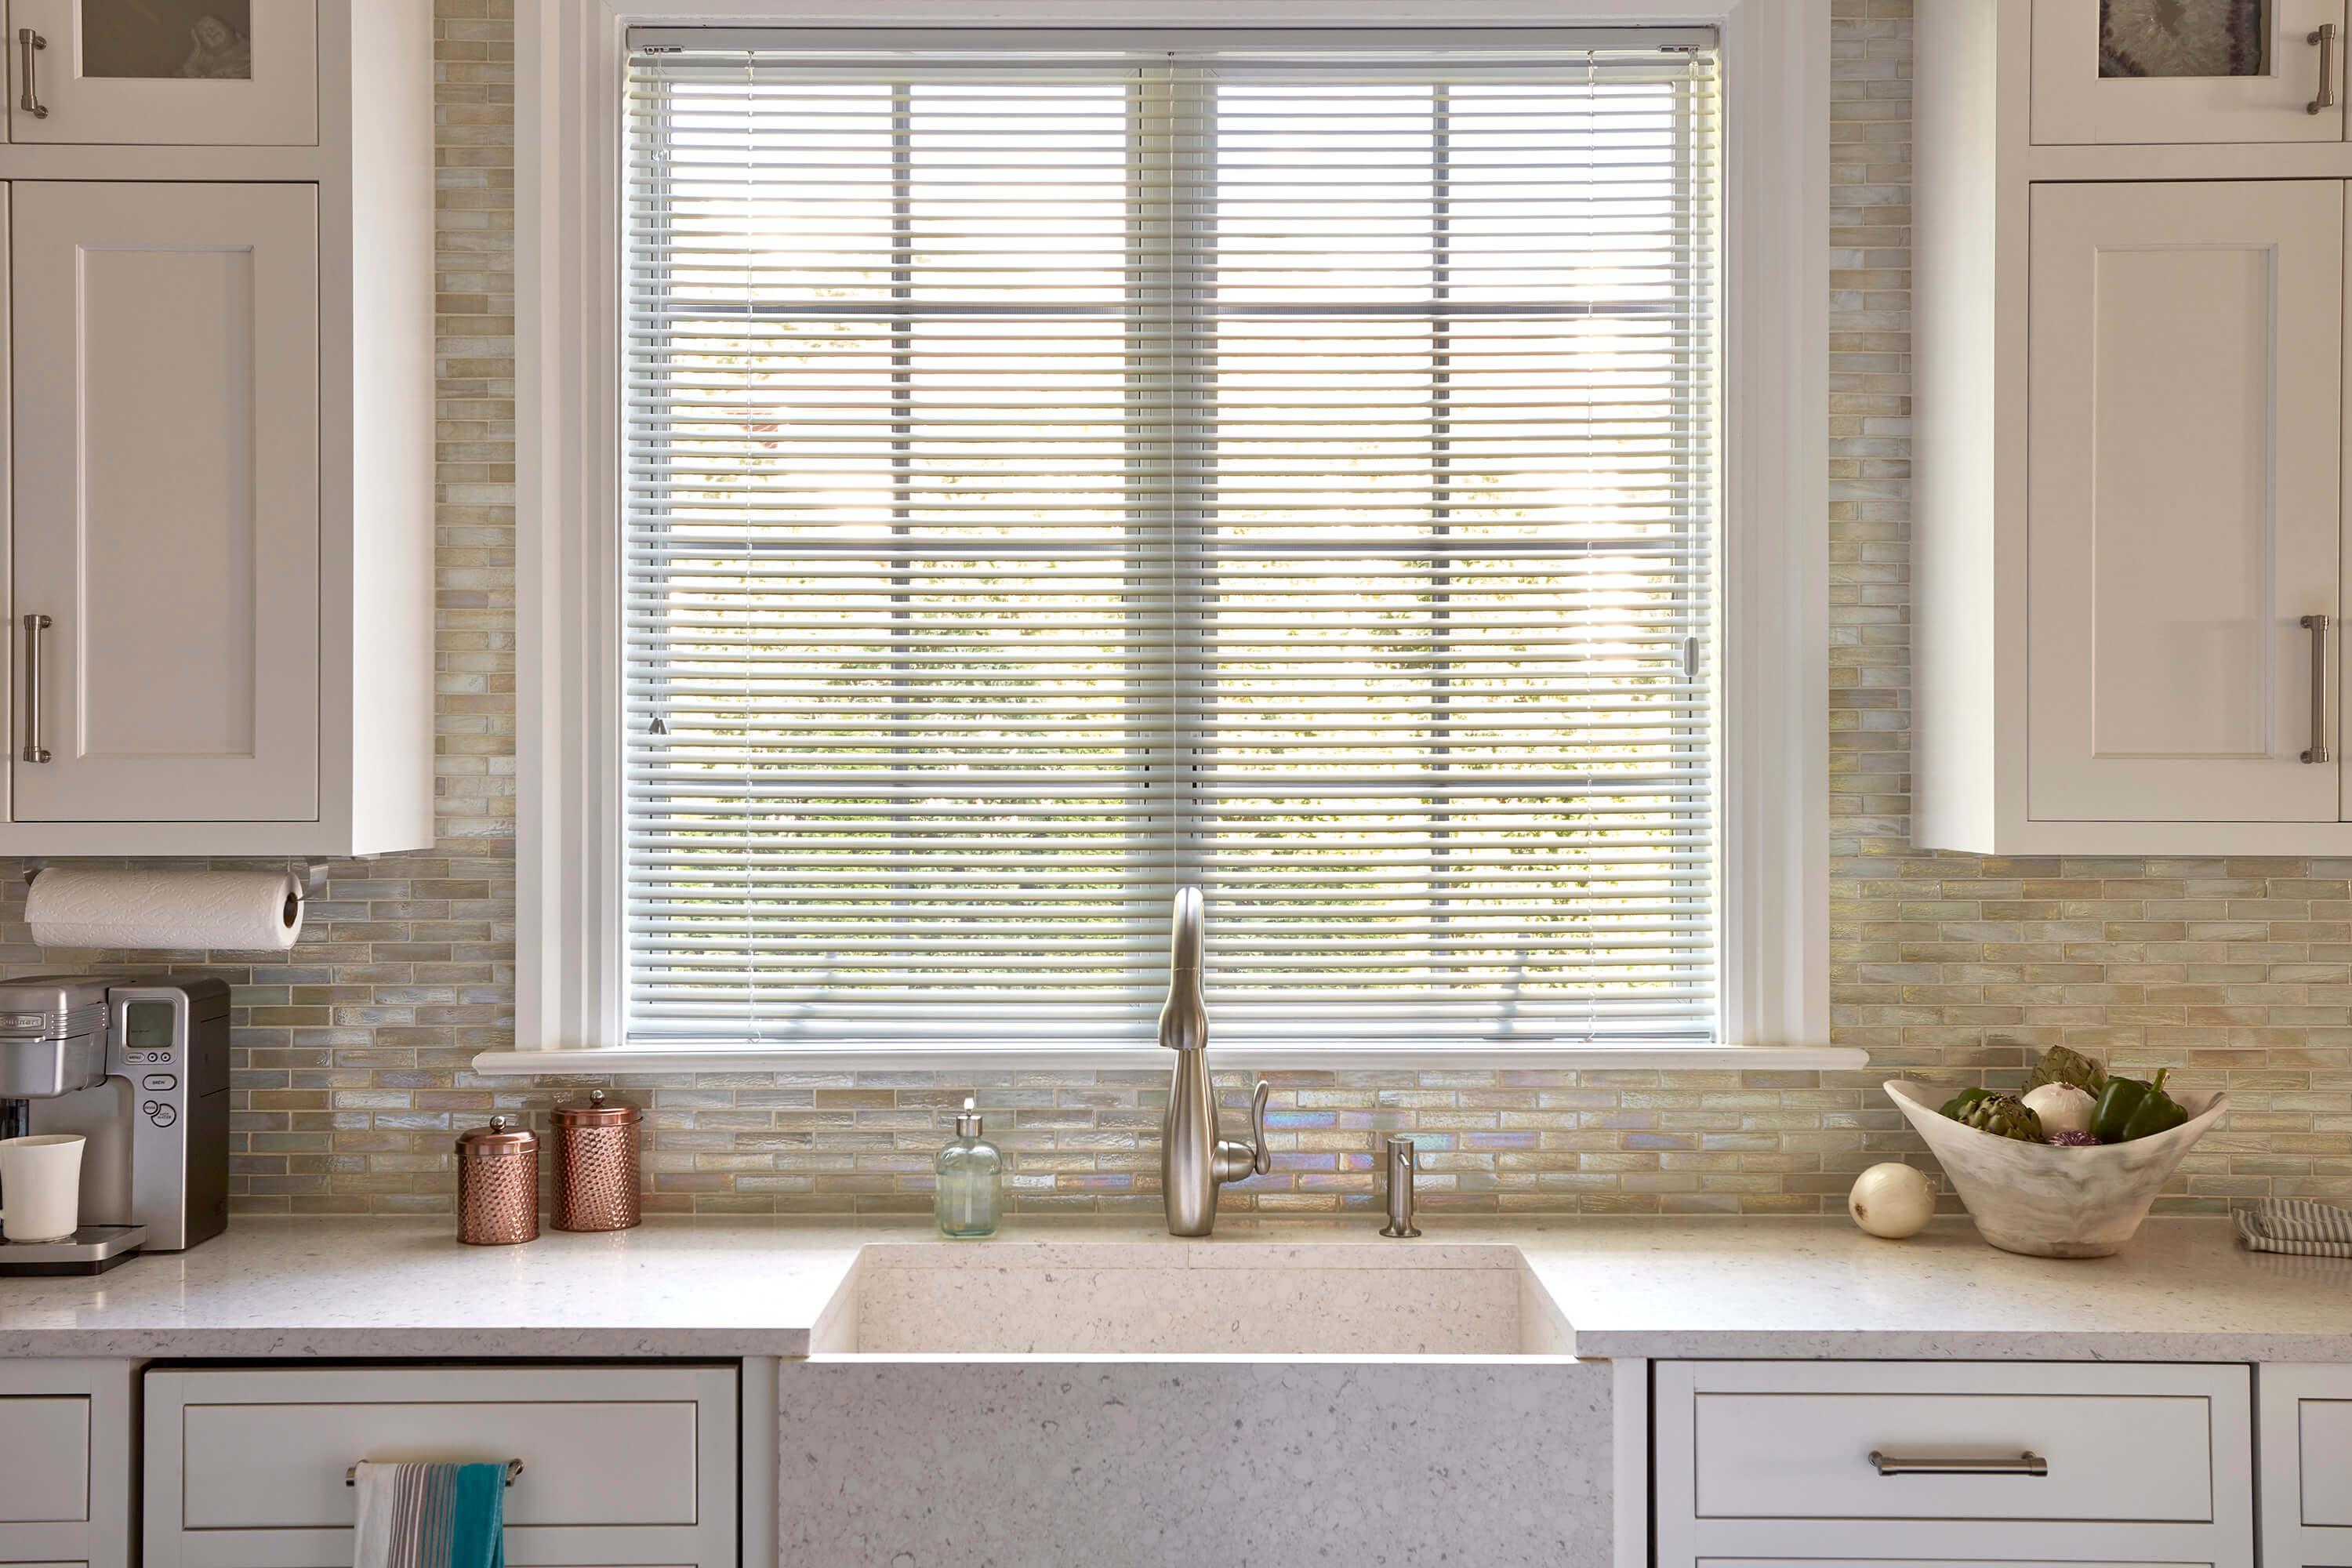 White aluminum mini blinds hang above a large sink in a contemporary kitchen.